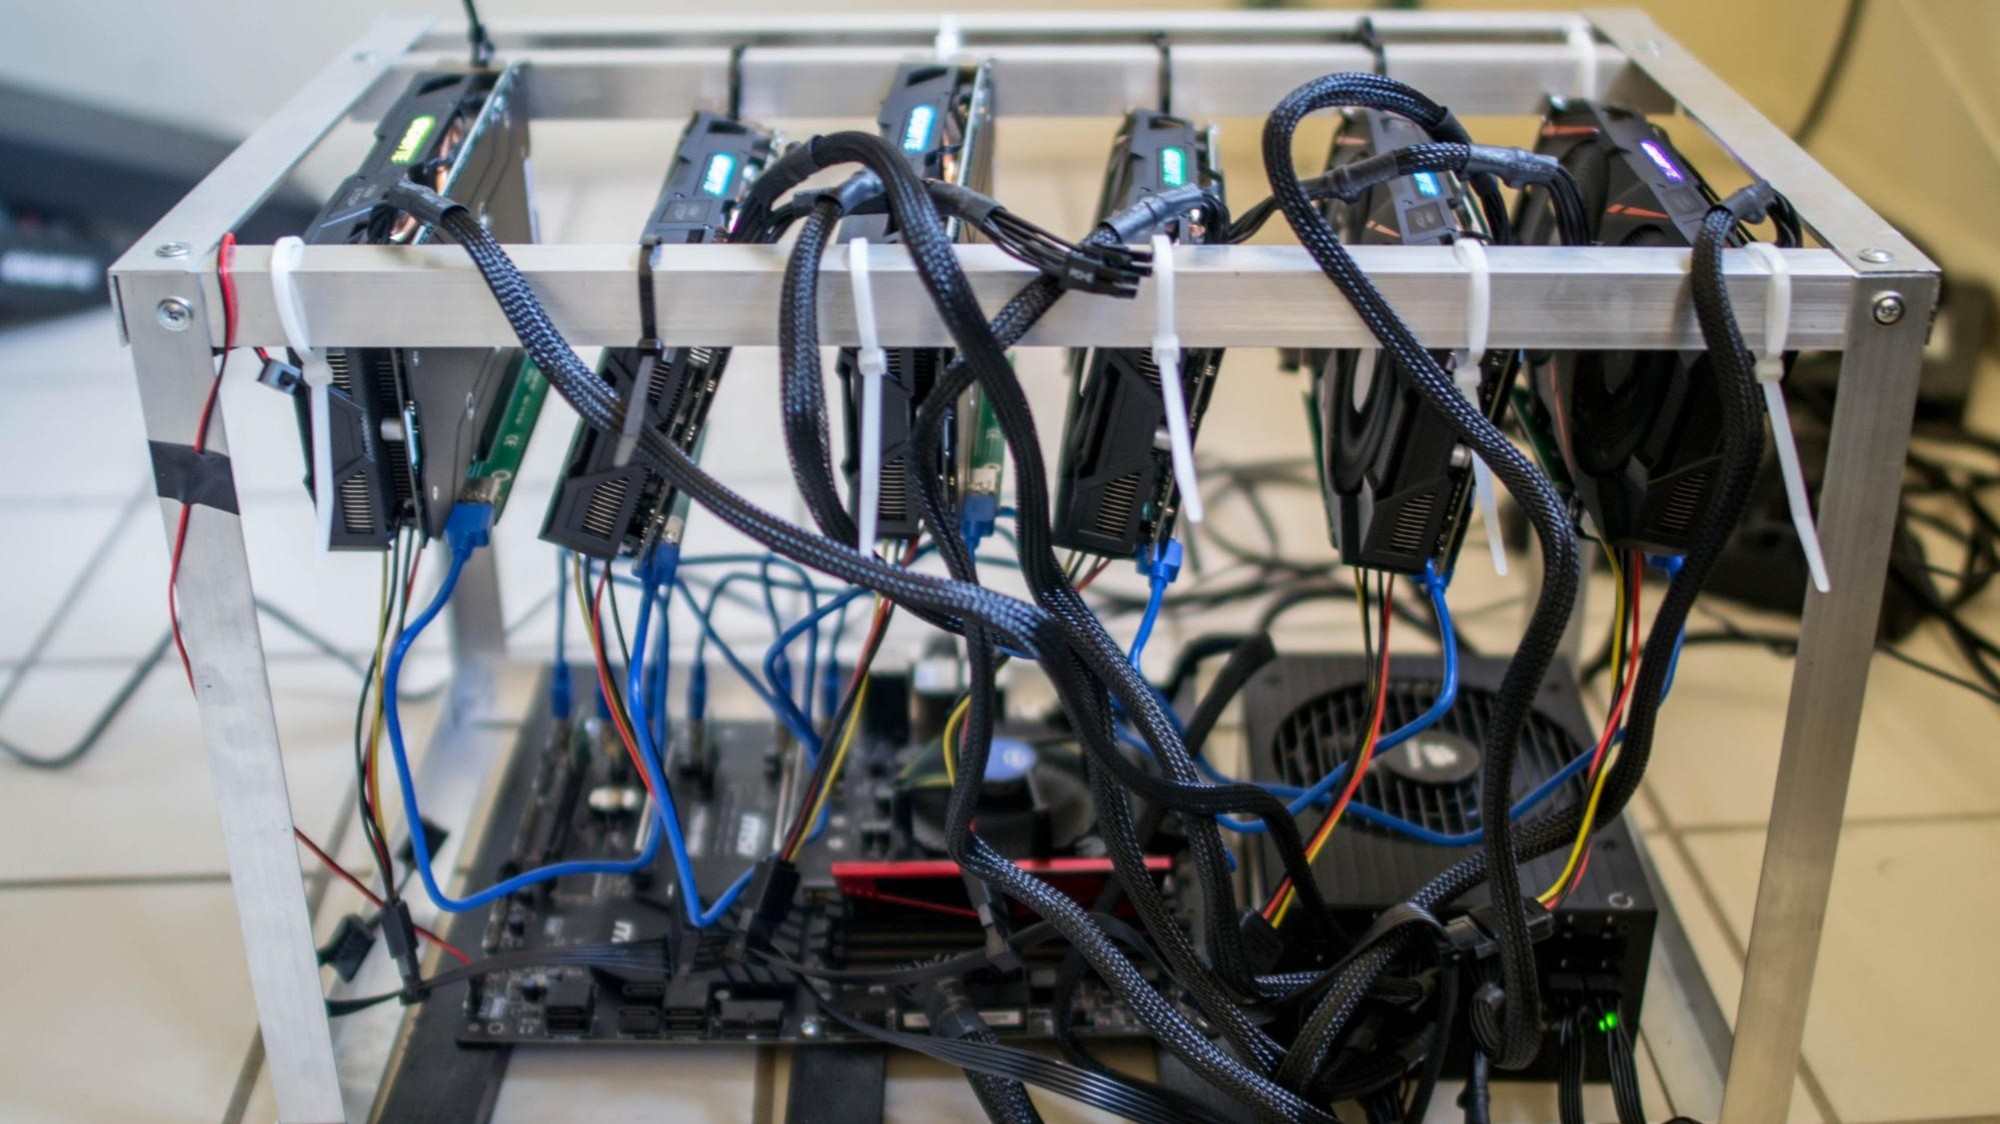 An Idiot's Guide to Building an Ethereum Mining Rig - VICE